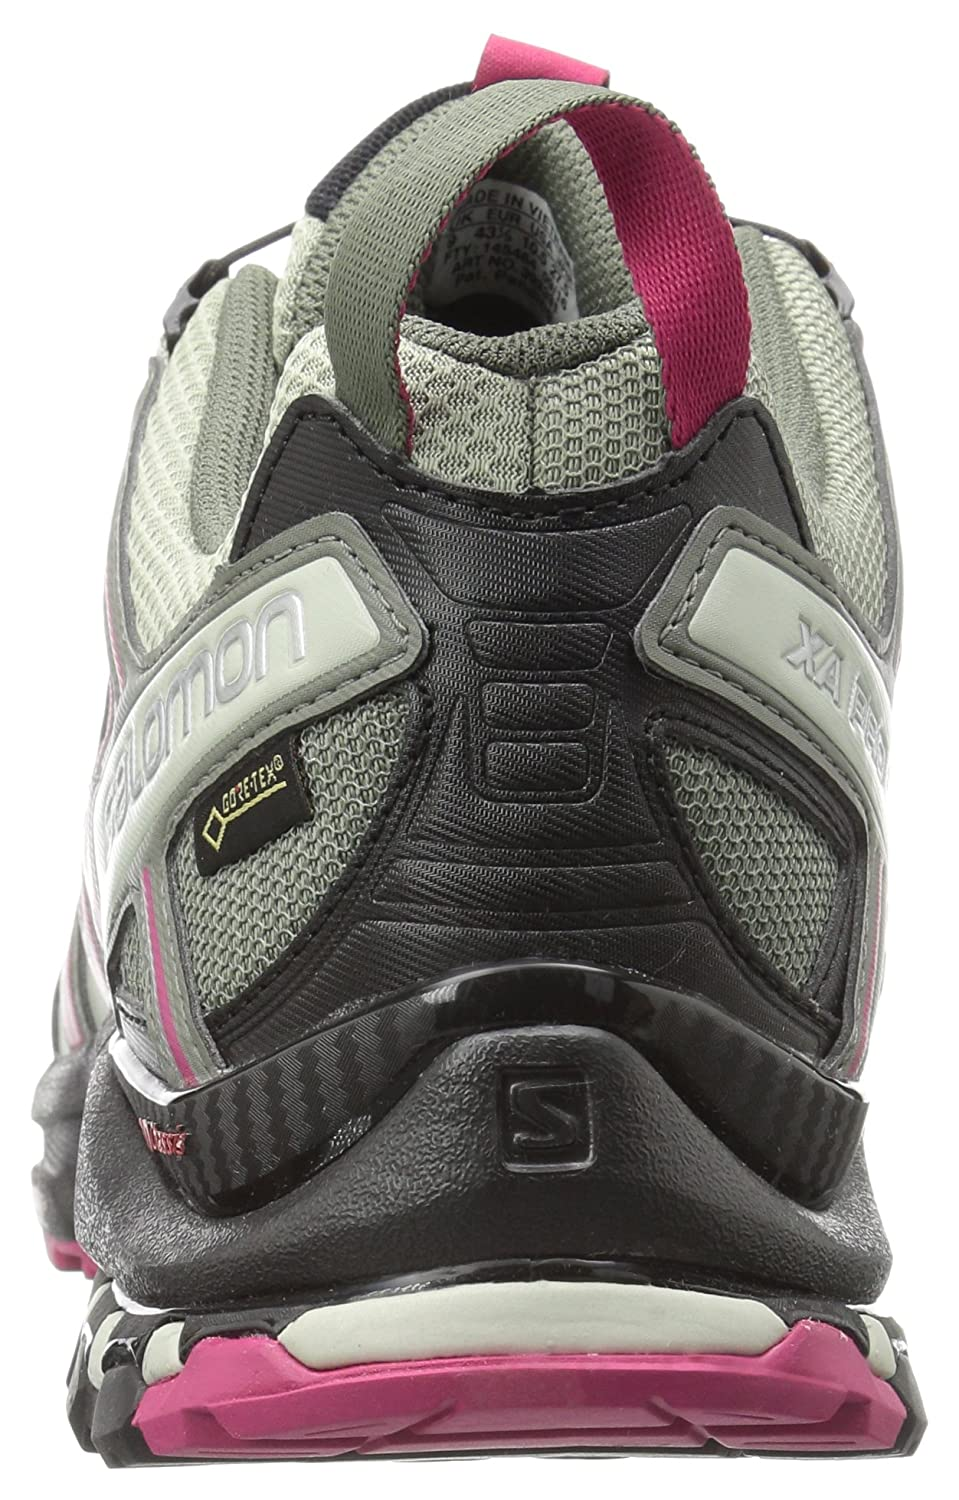 Salomon Women's W Xa Pro 3D GTX W Women's Trail Runner B01HD2RY6K 7.5 M US|Shadow e240ae